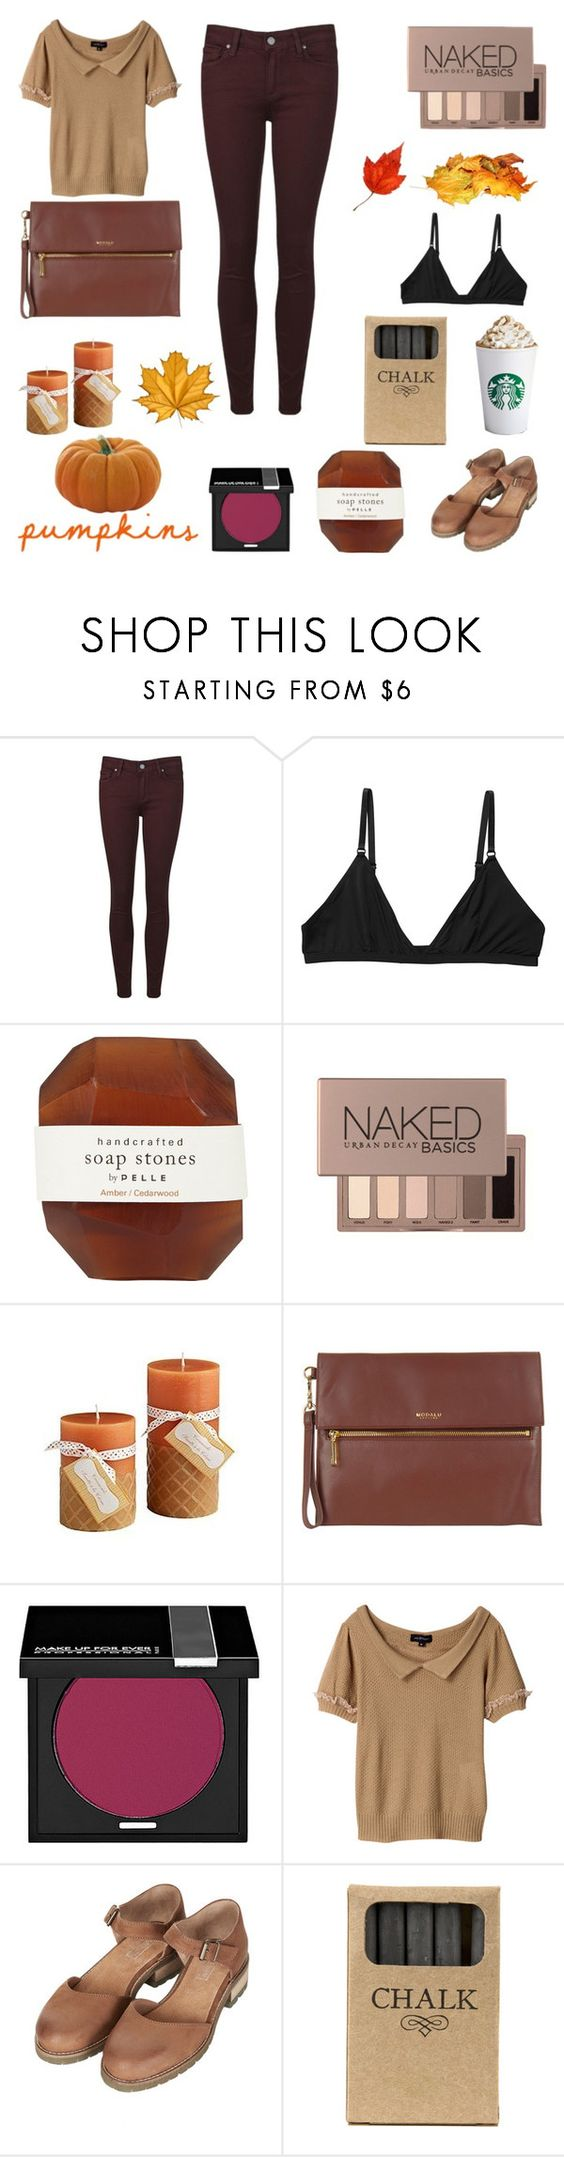 """""""and now i'm falling for you"""" by a-sparkly-girl ❤ liked on Polyvore featuring Paige Denim, Monki, Pelle, Urban Decay, Pier 1 Imports, Modalu, MAKE UP FOR EVER, Topshop and Jayson Home"""